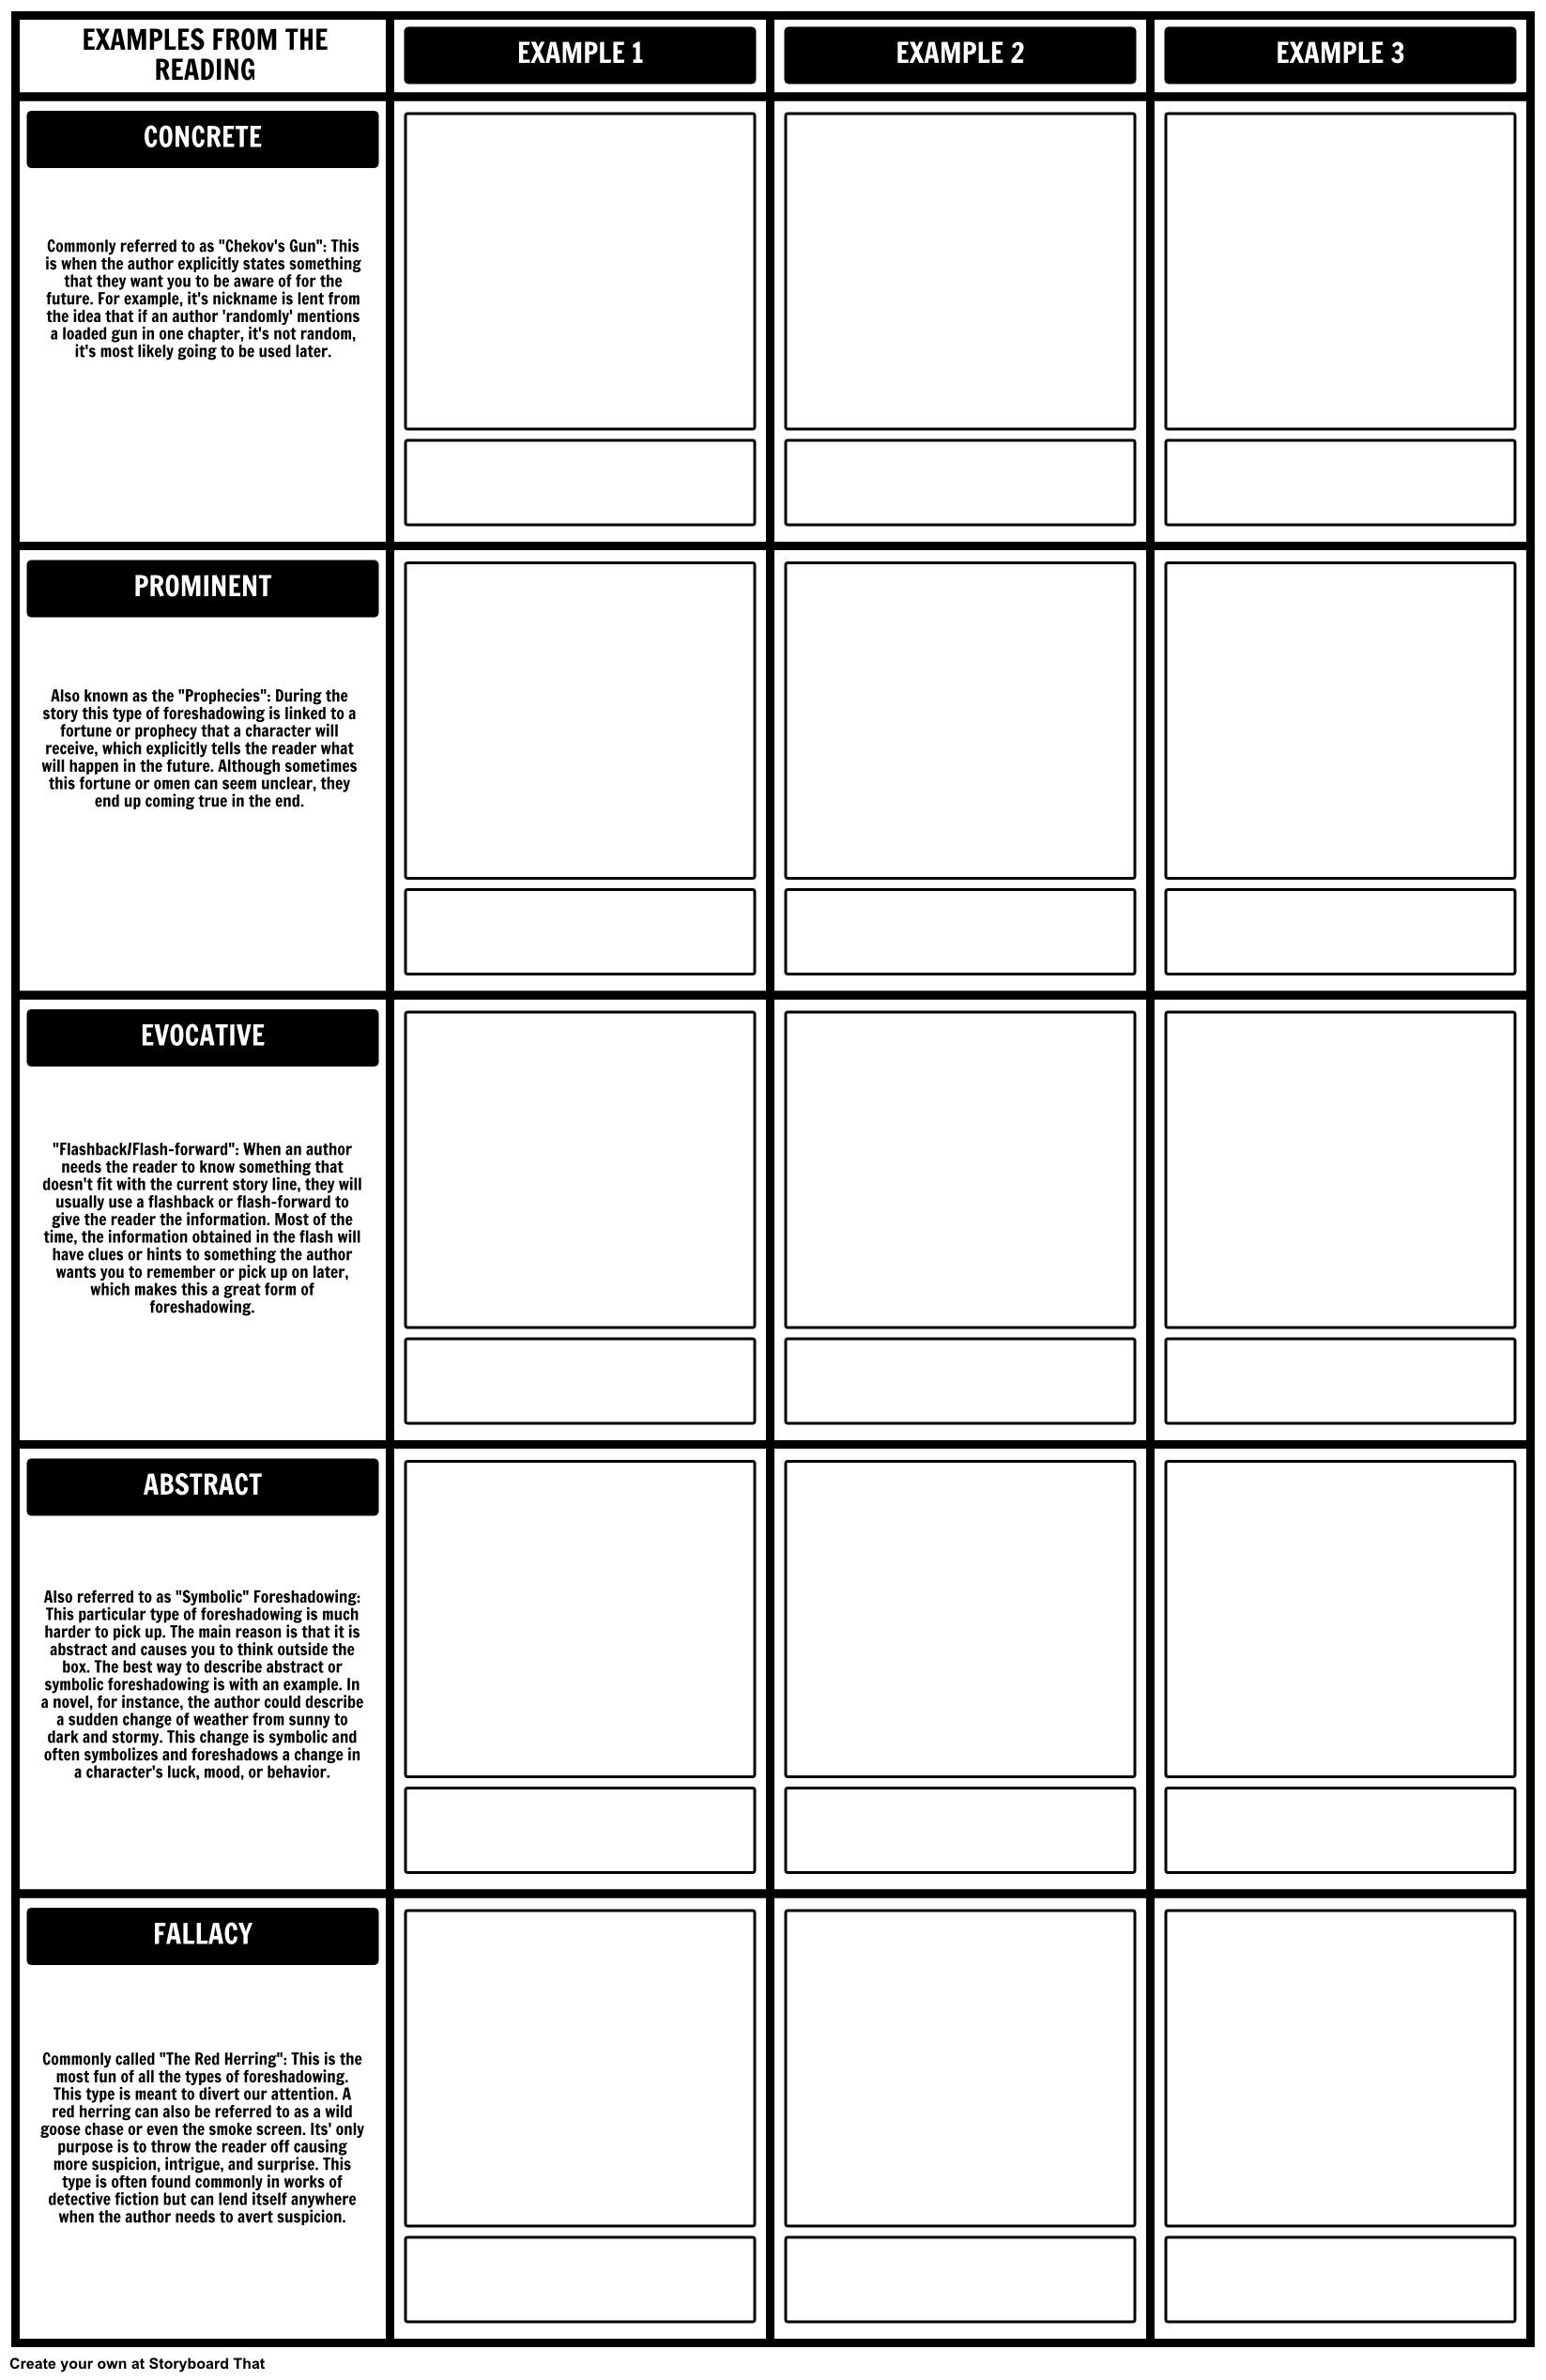 Worksheets Foreshadowing Worksheets our foreshadowing template worksheet was made with grid layout layout